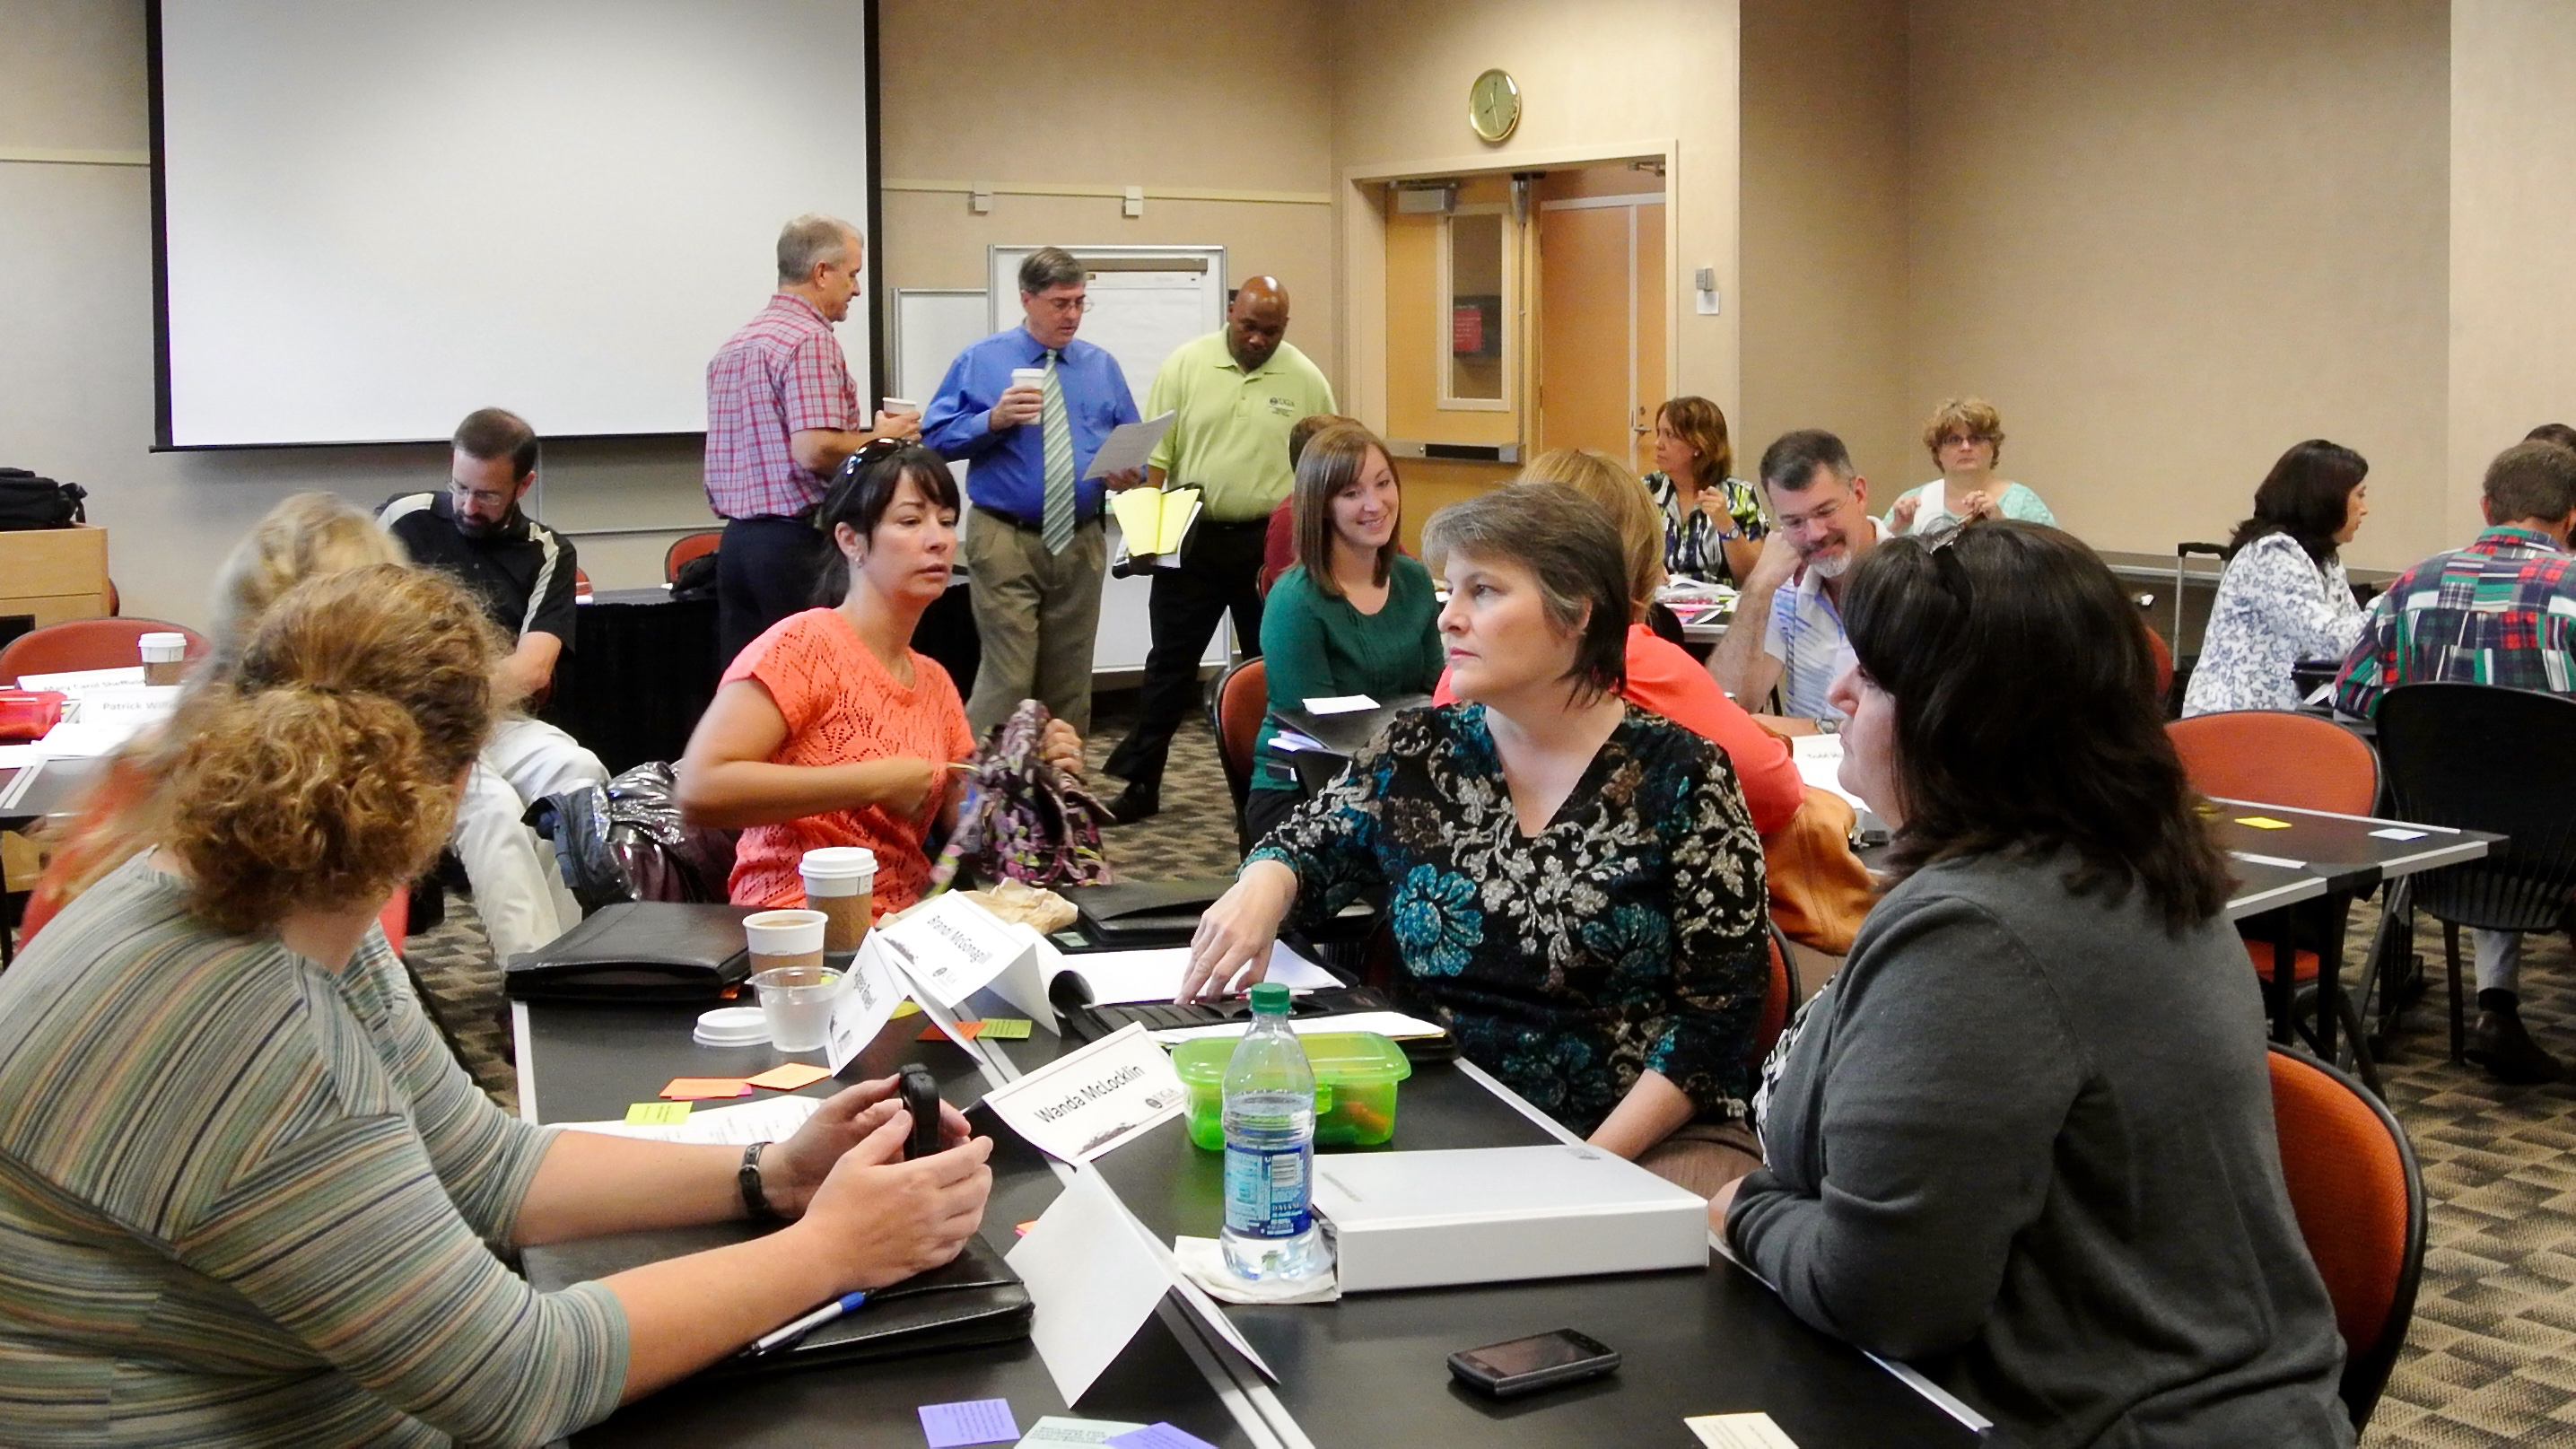 A leadership development class within the Extension Academy for Professional Excellence works on a classroom exercise.